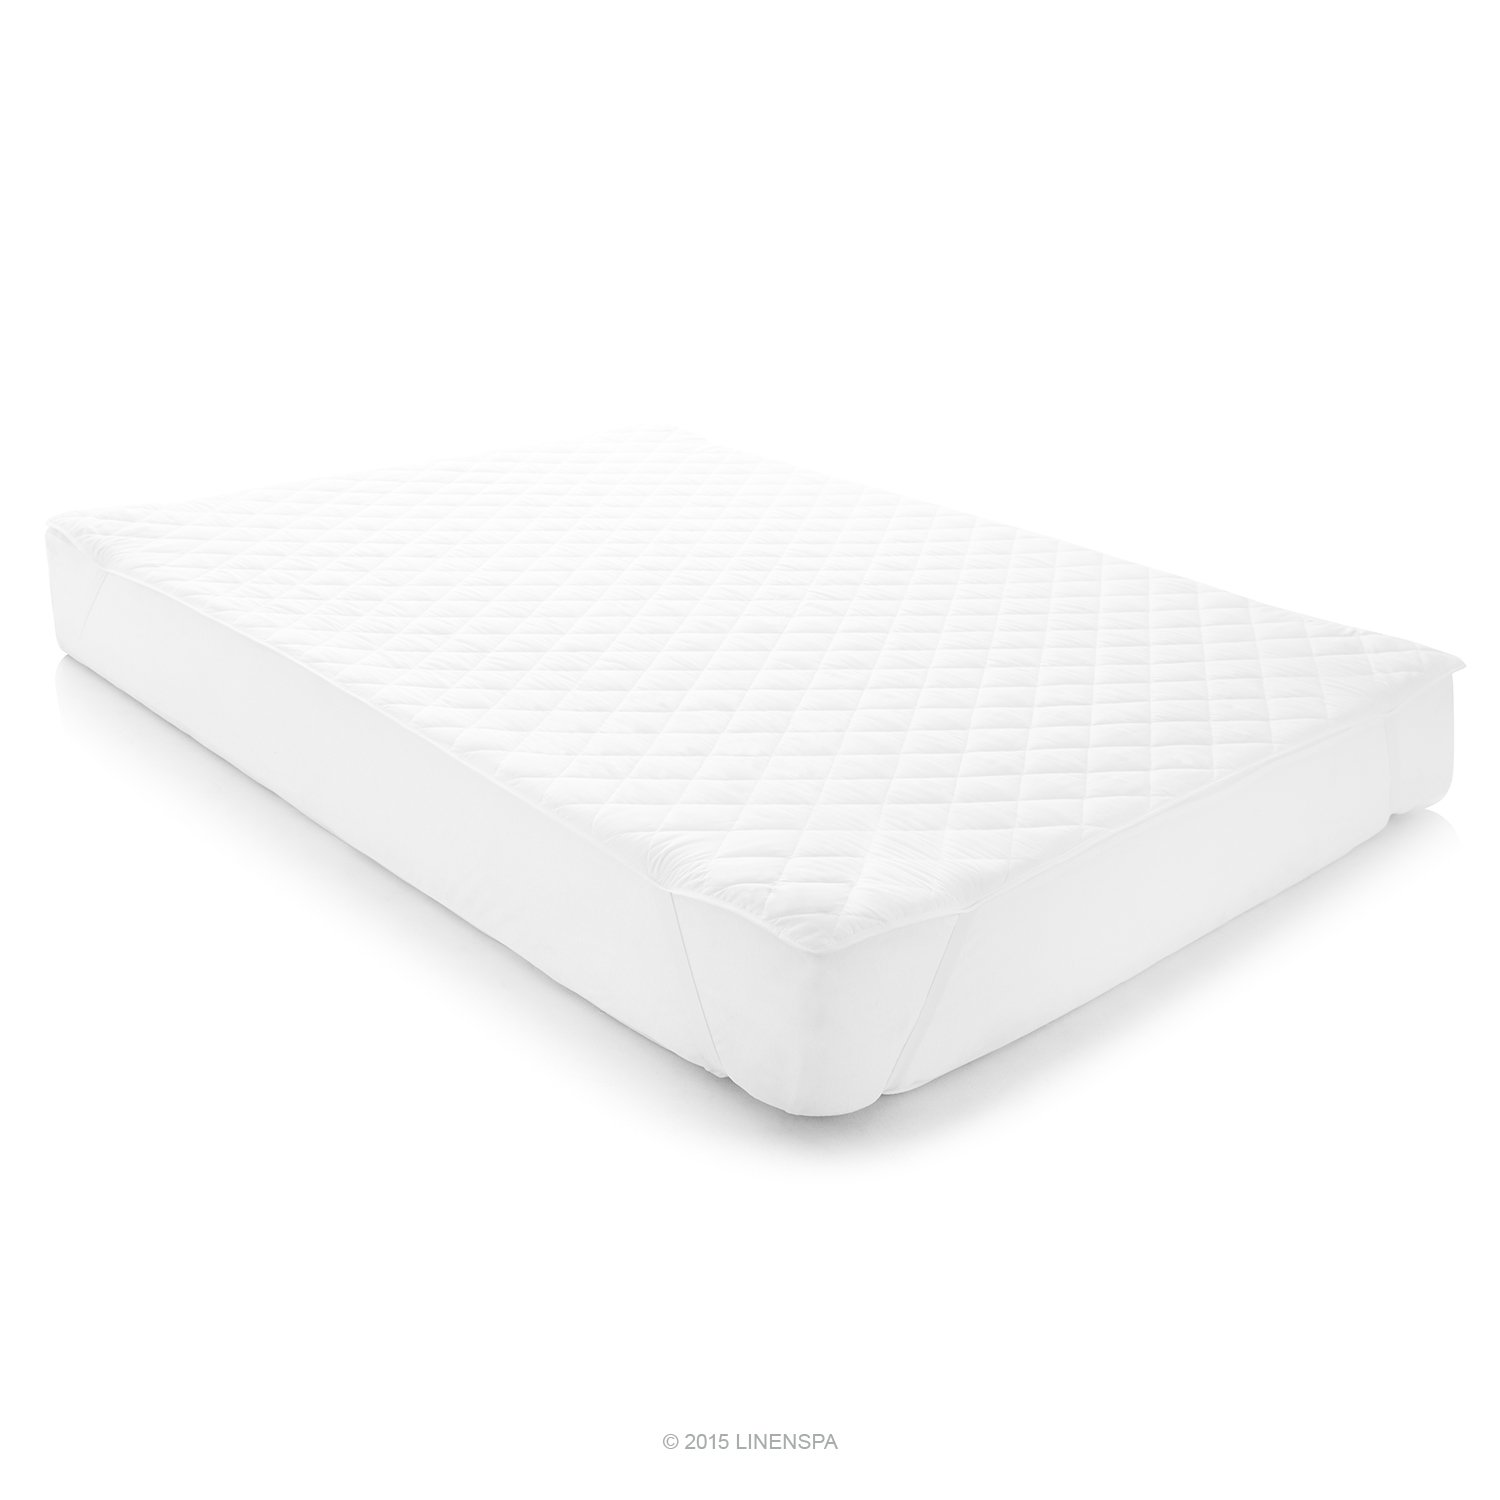 linenspa waterproof mattress pad with quilted microfiber cover twin xl ebay. Black Bedroom Furniture Sets. Home Design Ideas